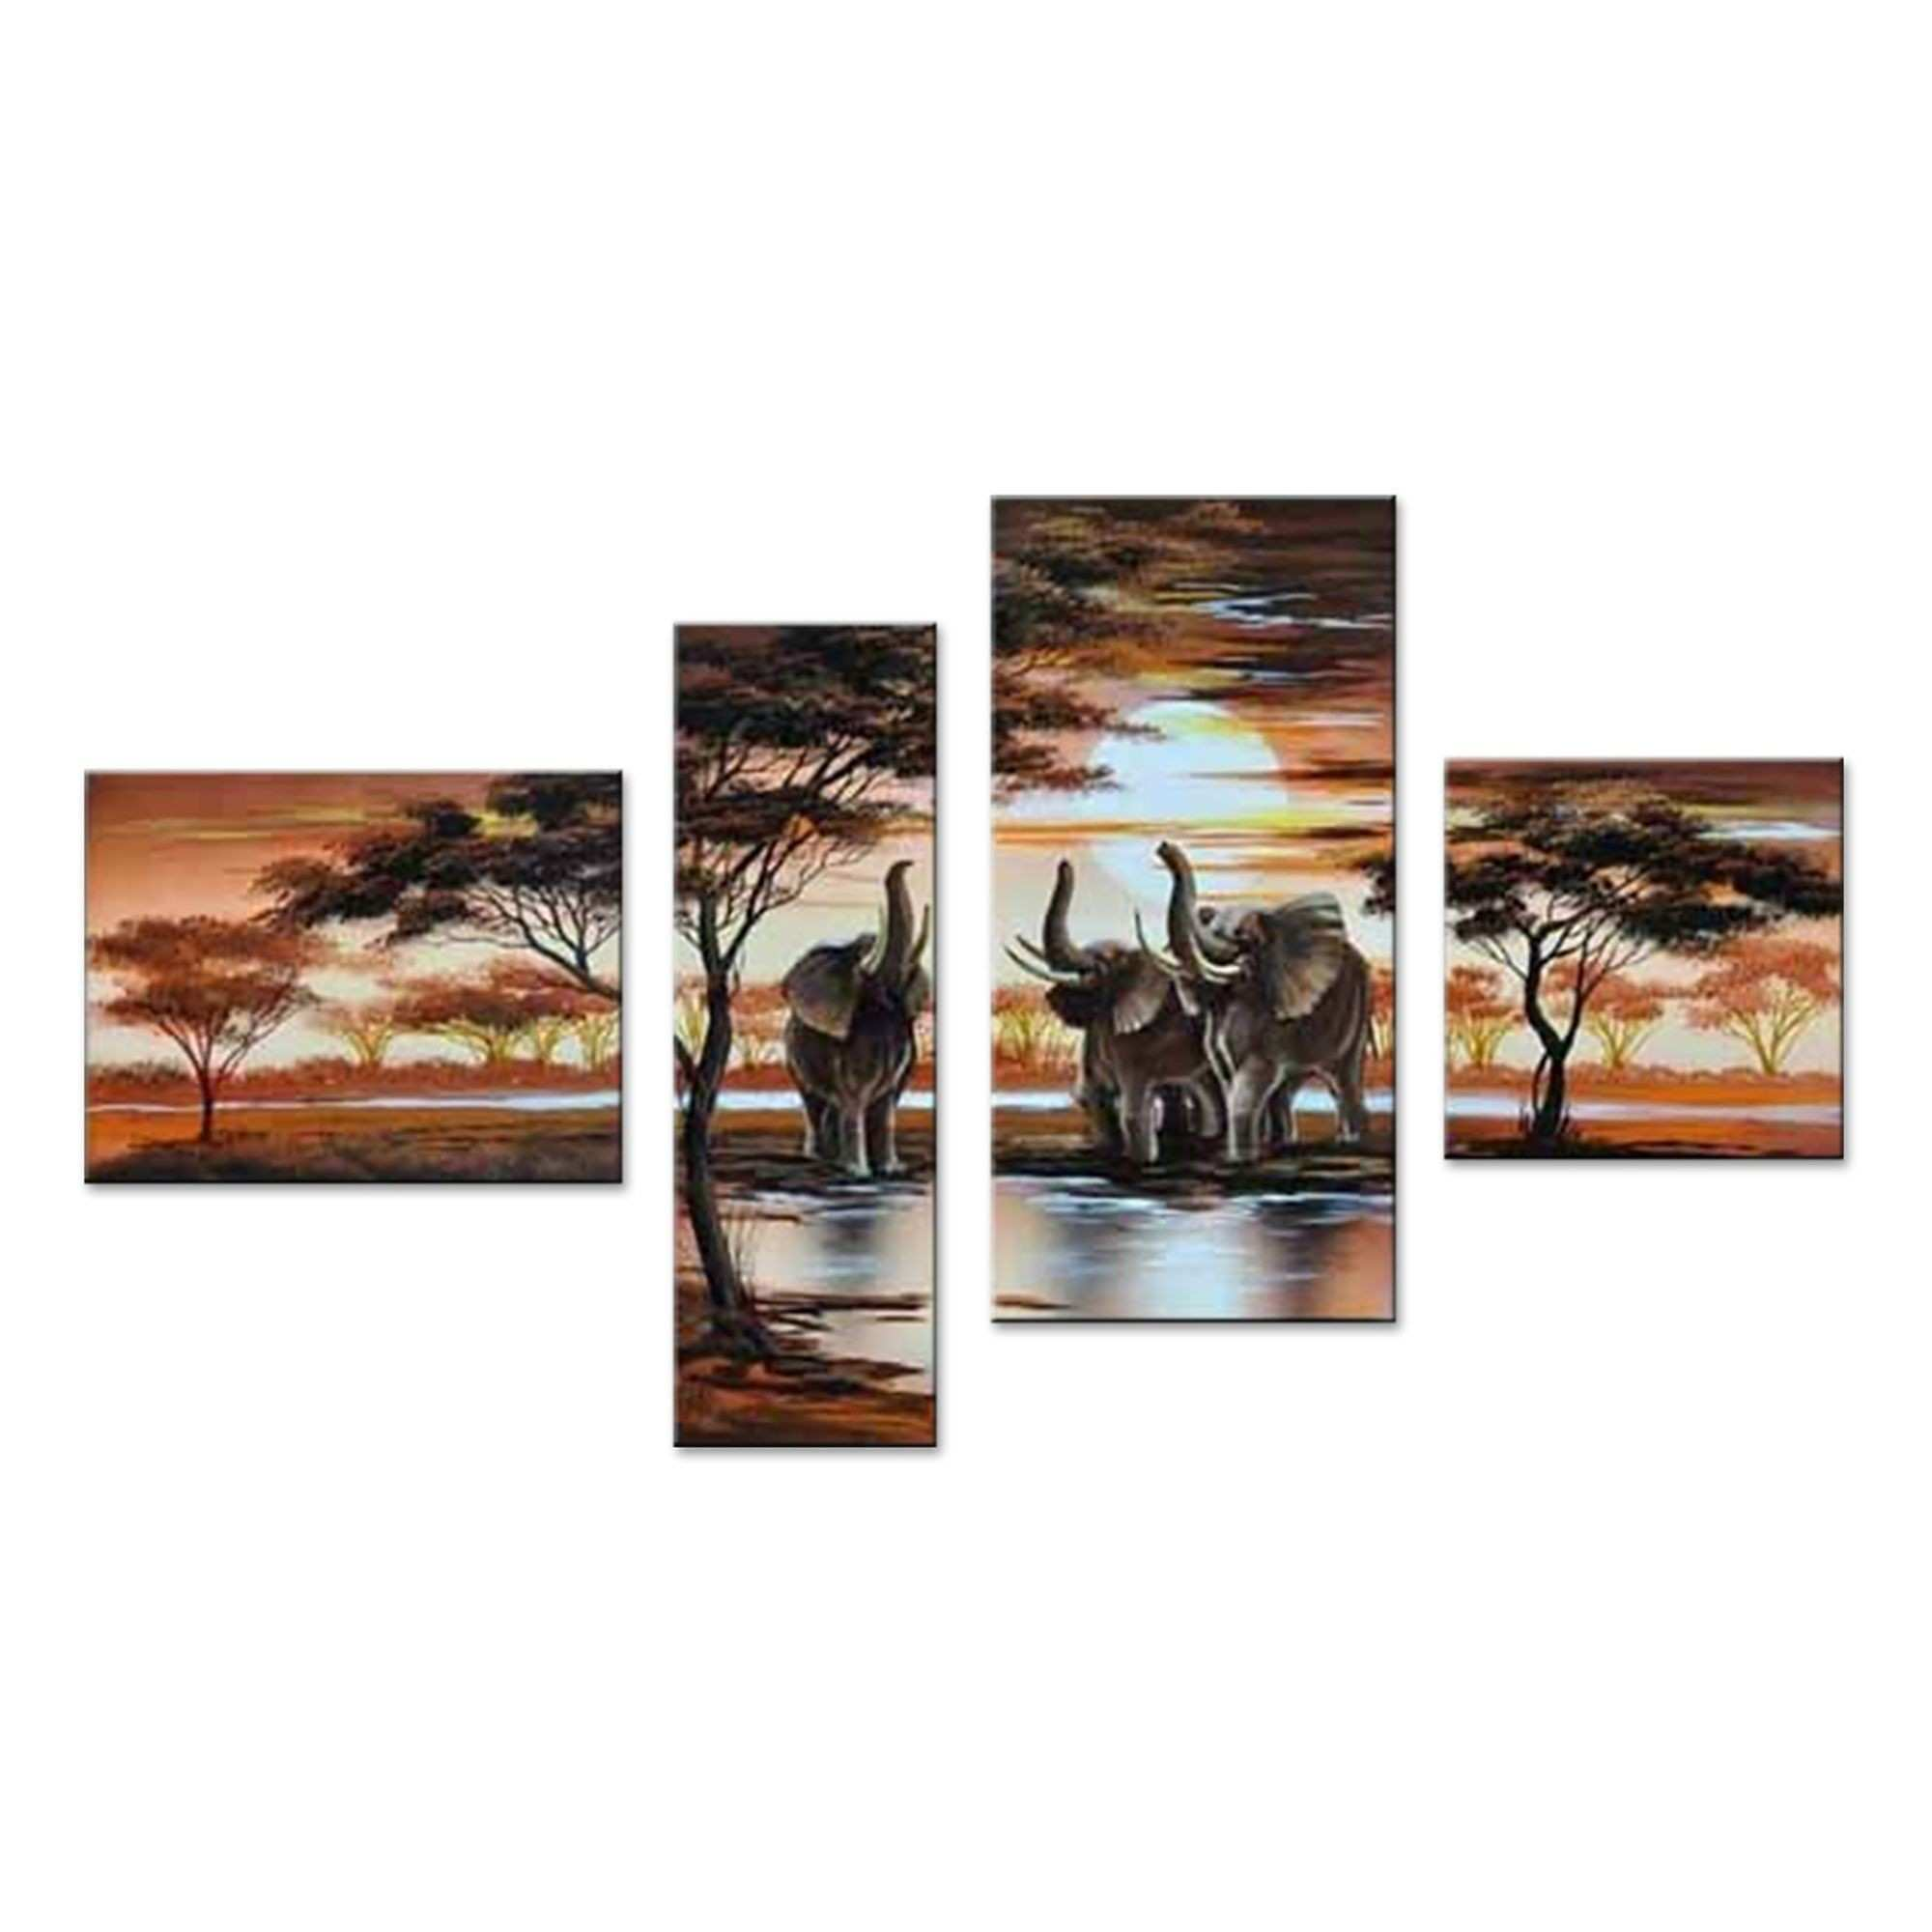 Elephants of the Jungle Landscape Canvas Wall Art Oil Painting